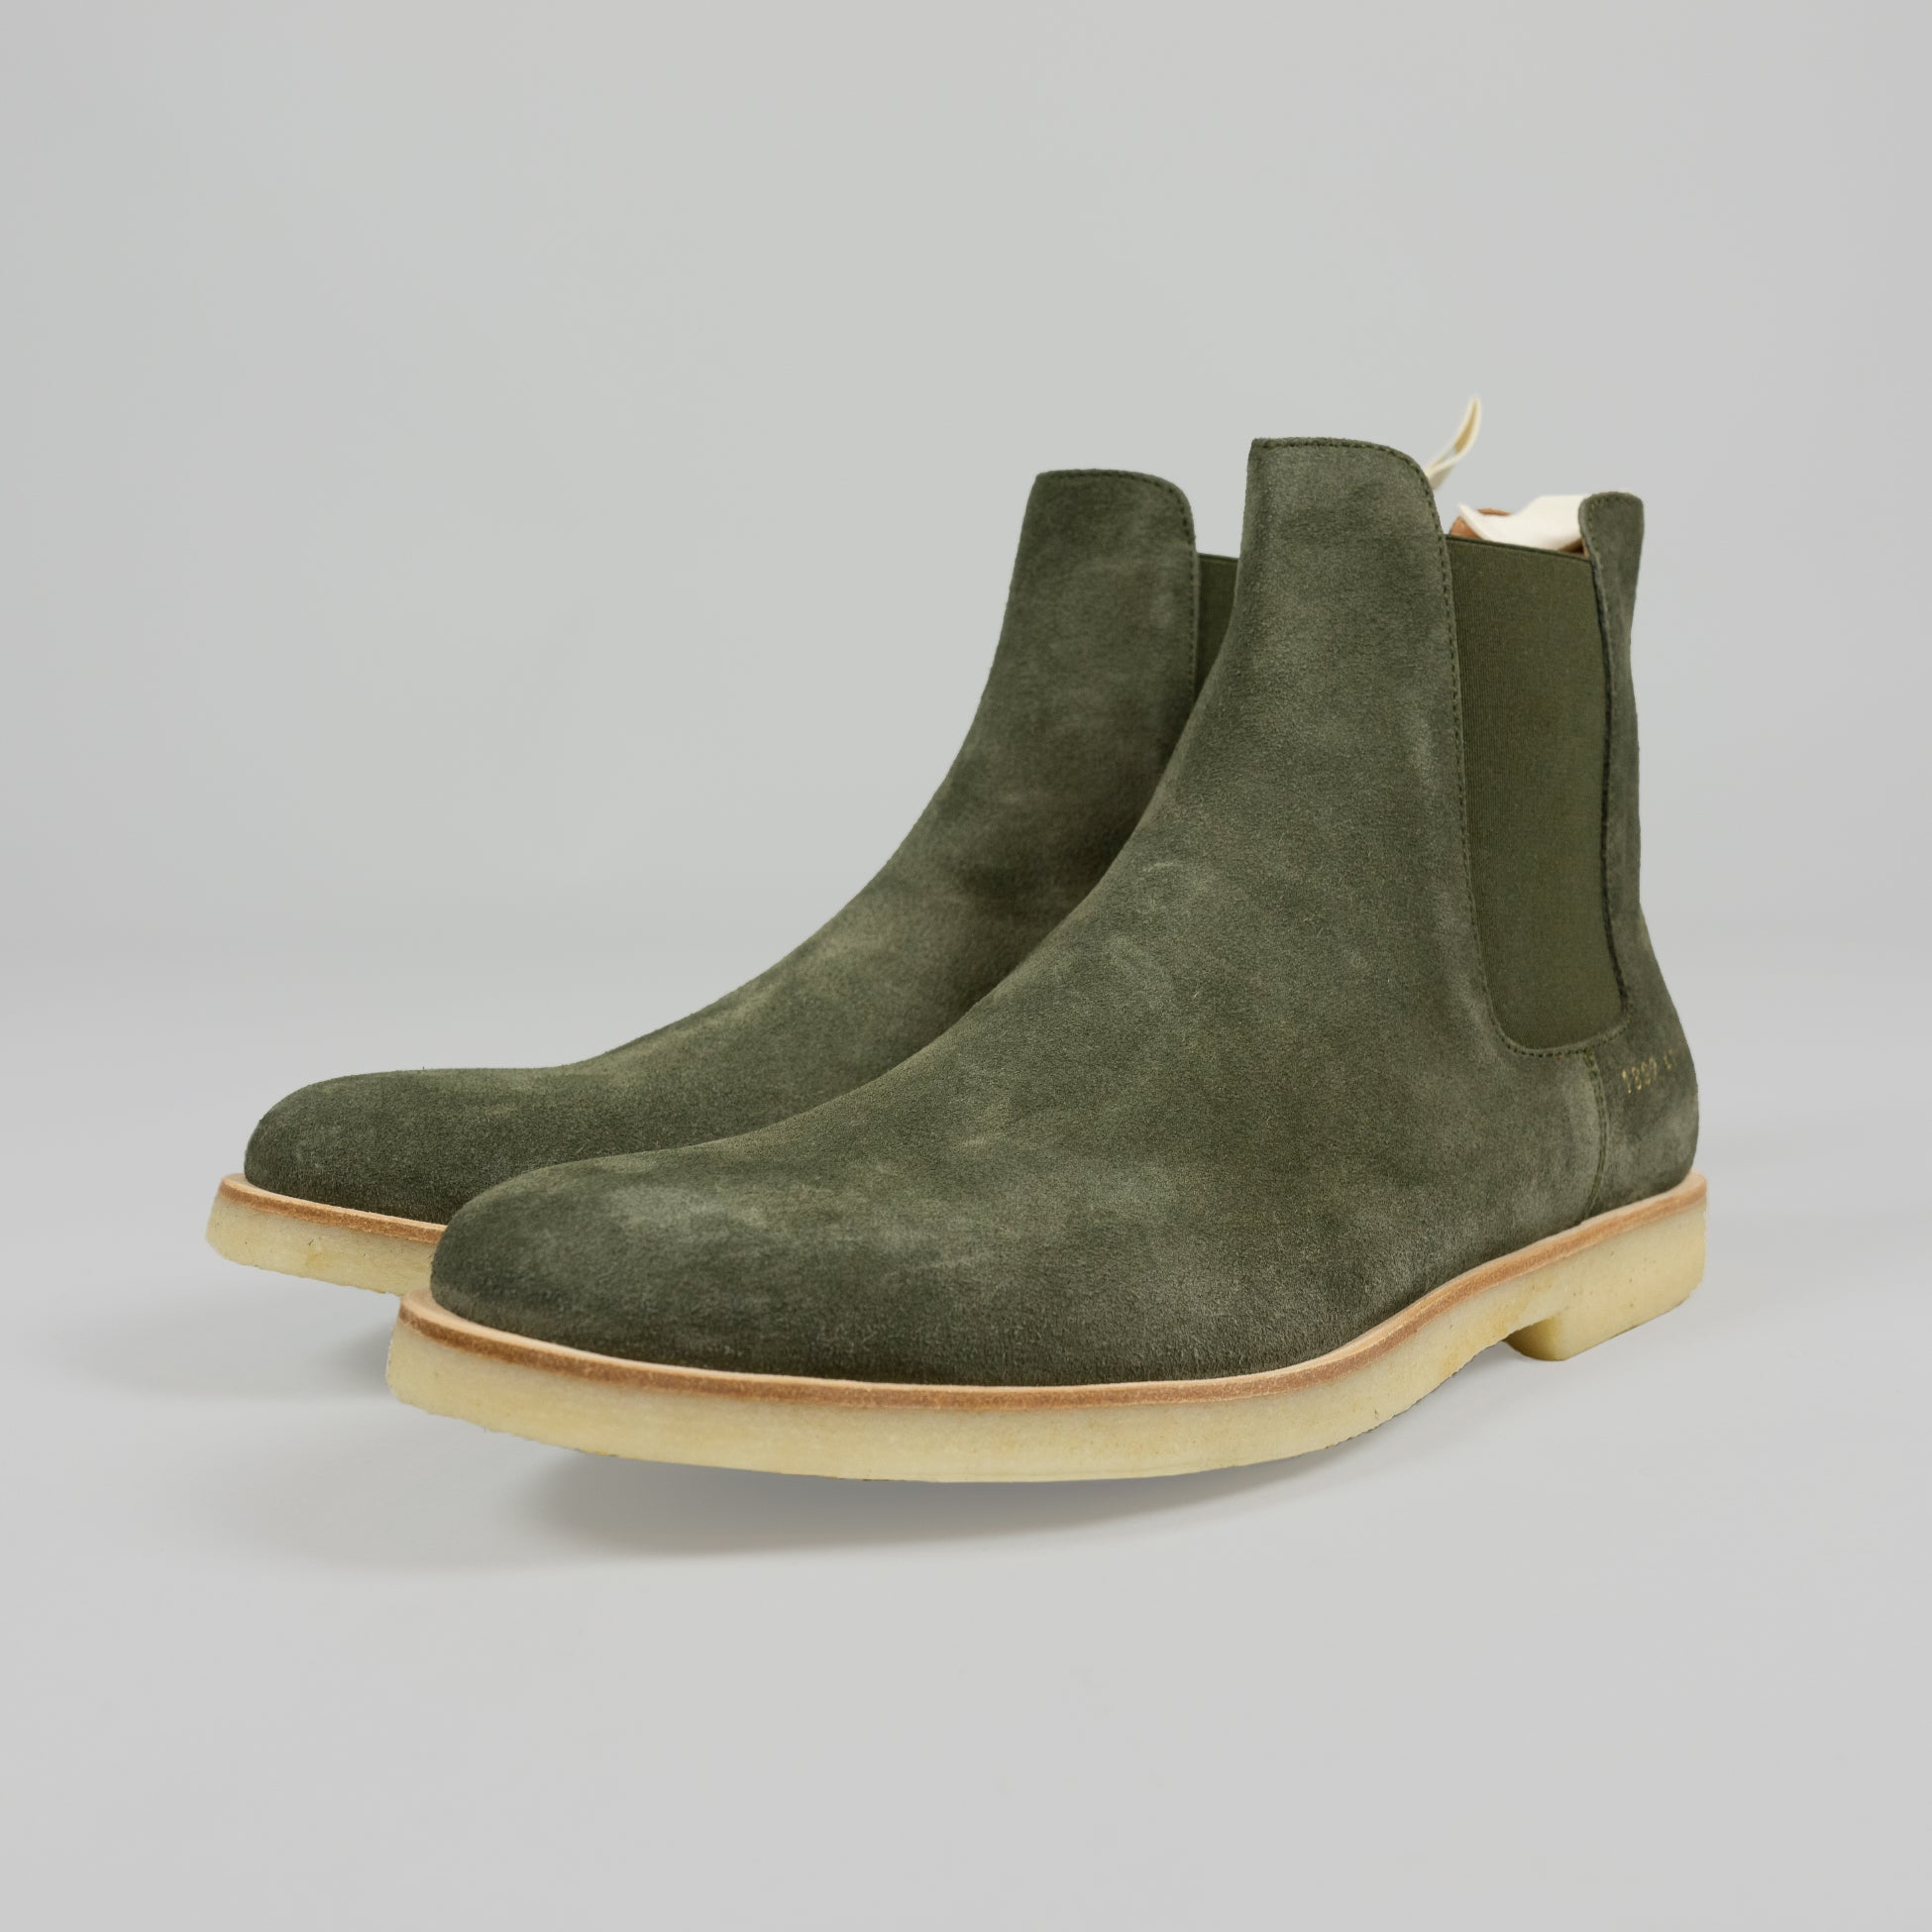 Common Projects Chelsea Boot in Olive Suede